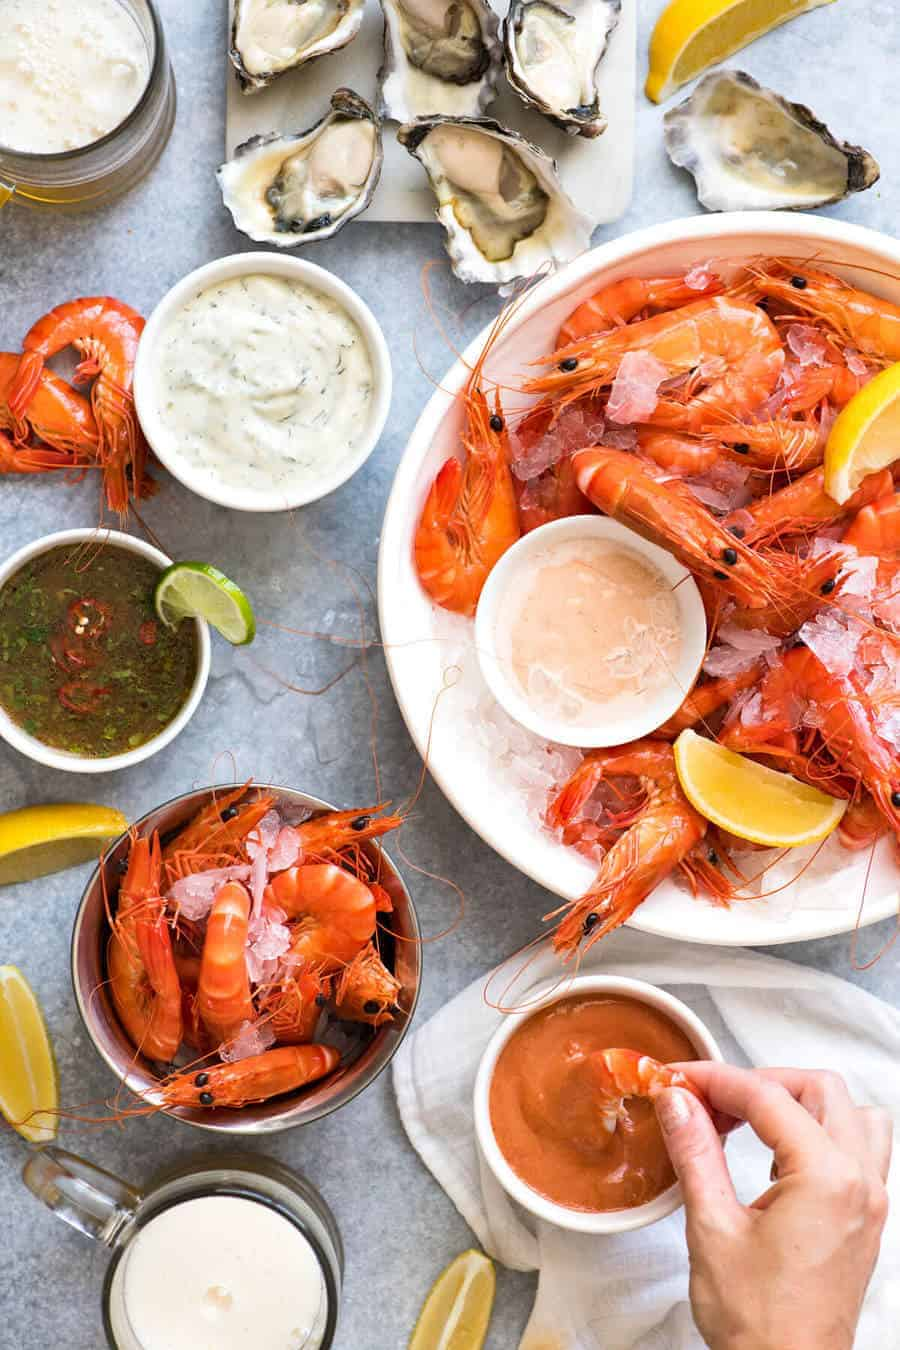 5 great Prawn Dipping Sauces: Cocktail / Seafood Sauce, Tartare, Marie Rose / Thousand Island, or a Thai Chilli Lime Sauce for something fresher. recipetineats.com